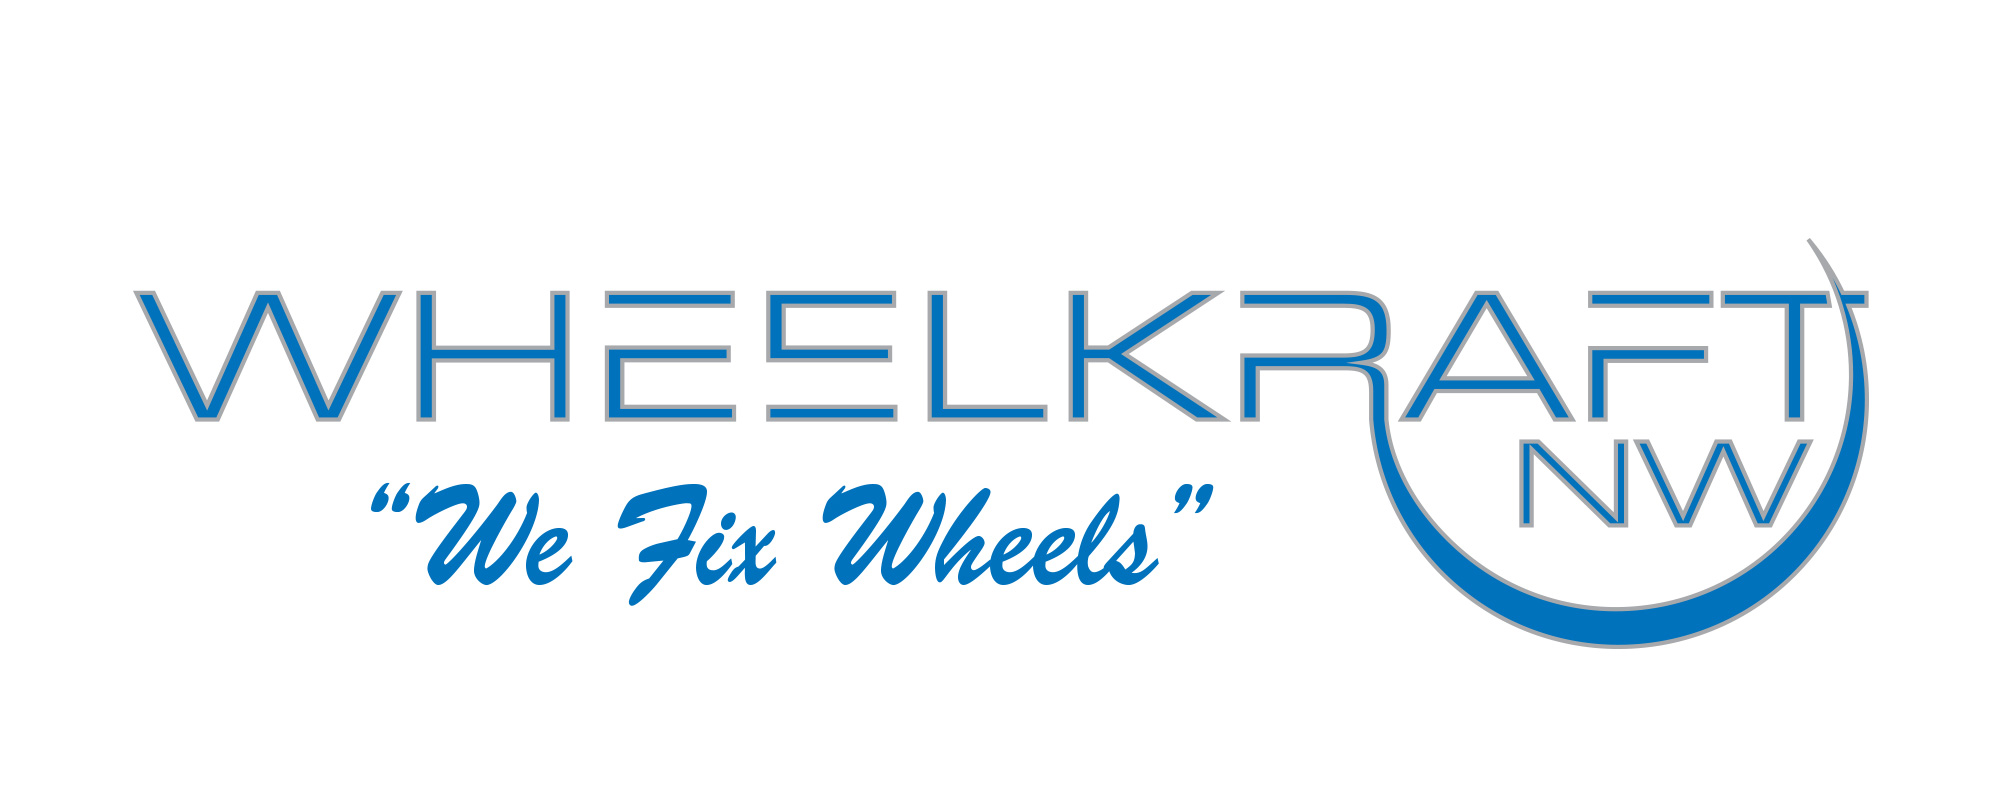 Wheelkraft NW